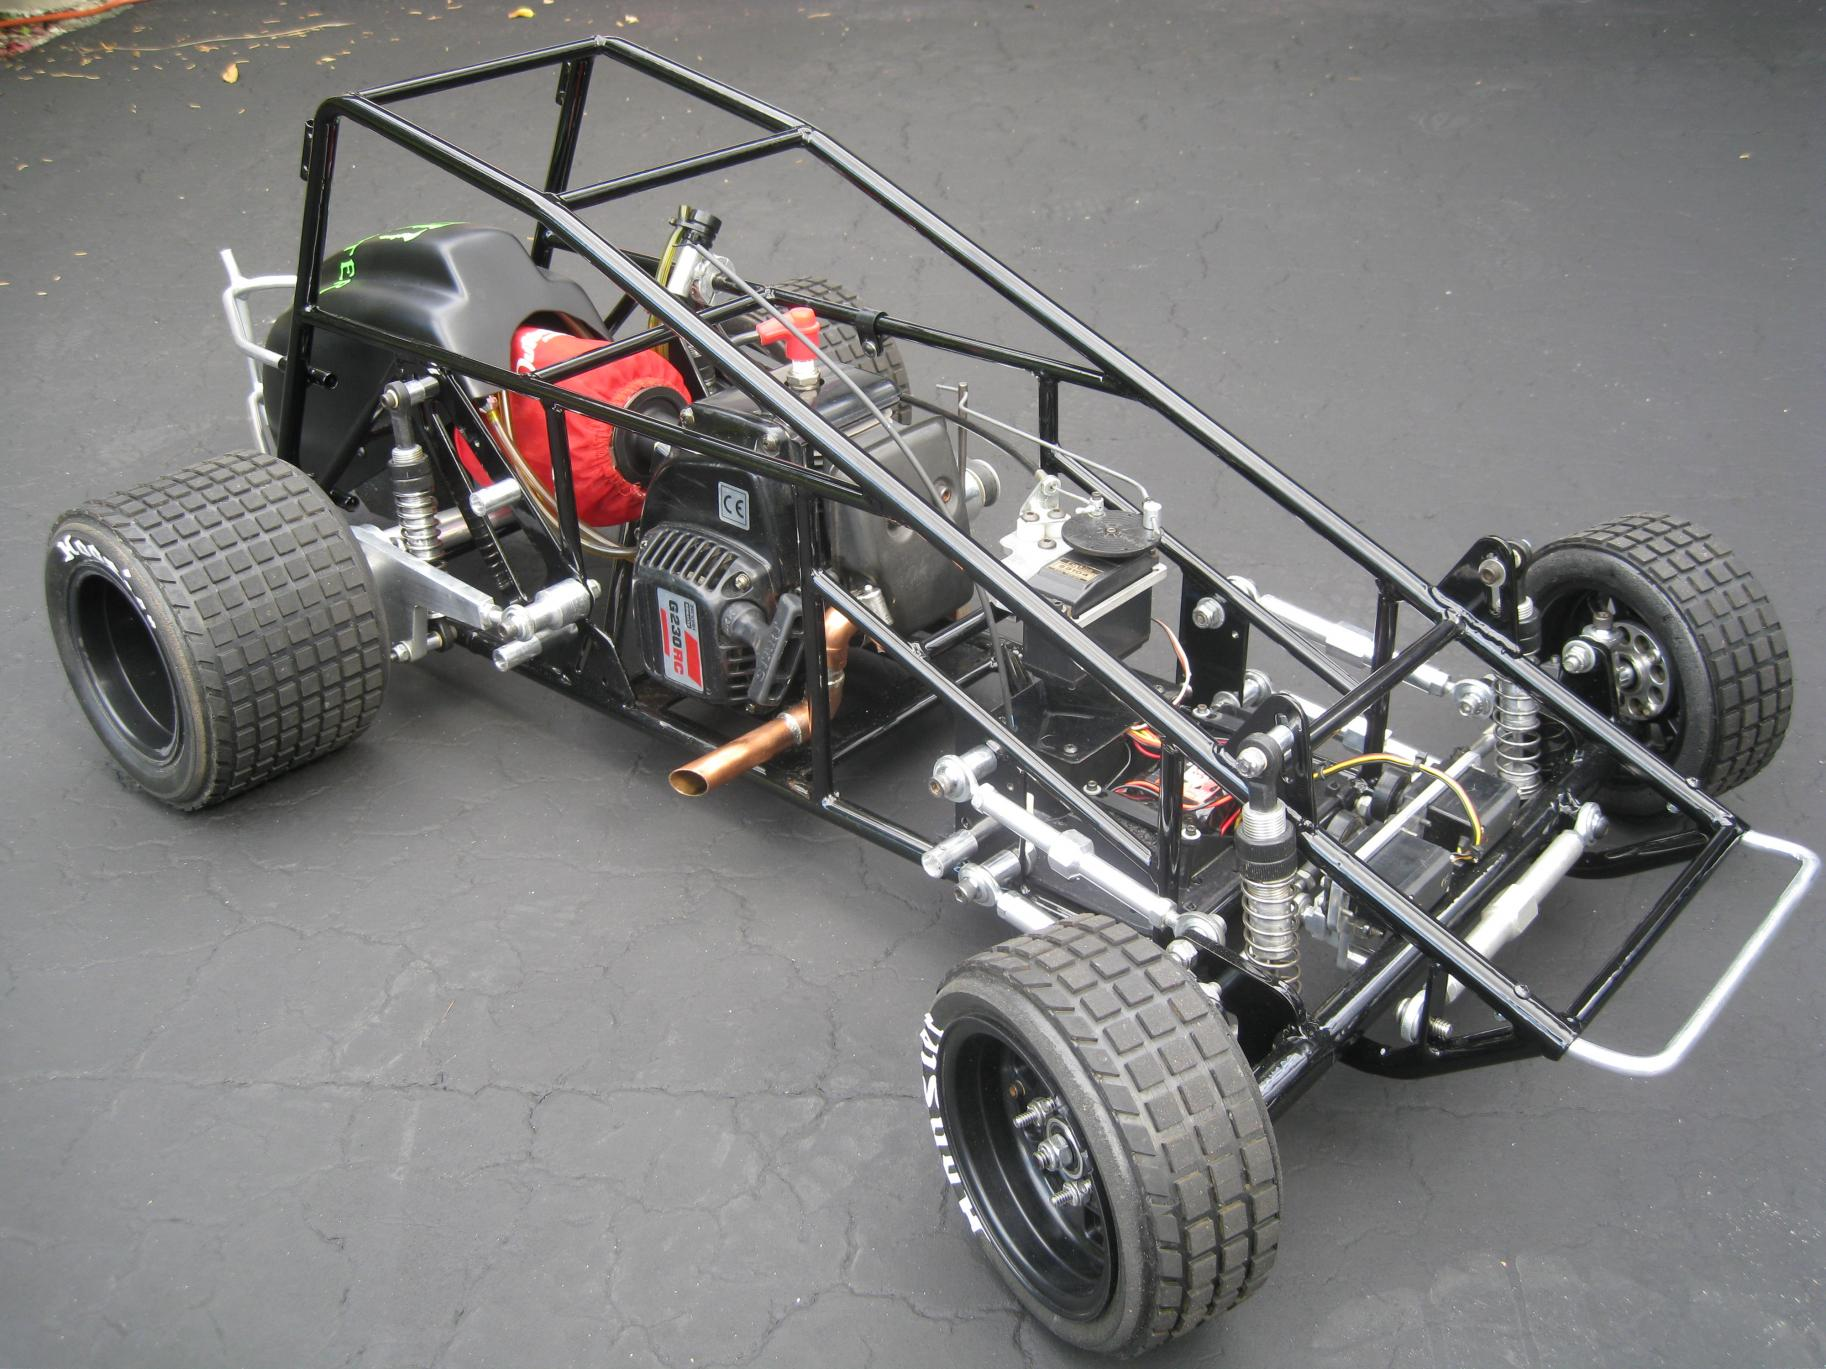 losi nitro truck r with 508858 Post Up Pics Your Sprint Cars 5 on Watch in addition Fid Electric Starter Motor  patible With Baja And Lossi 5t moreover 30 Degrees North Dtt Nylon Roll Cage Wine Red furthermore 308848486916074658 in addition Rc Cars Parts Ebay.